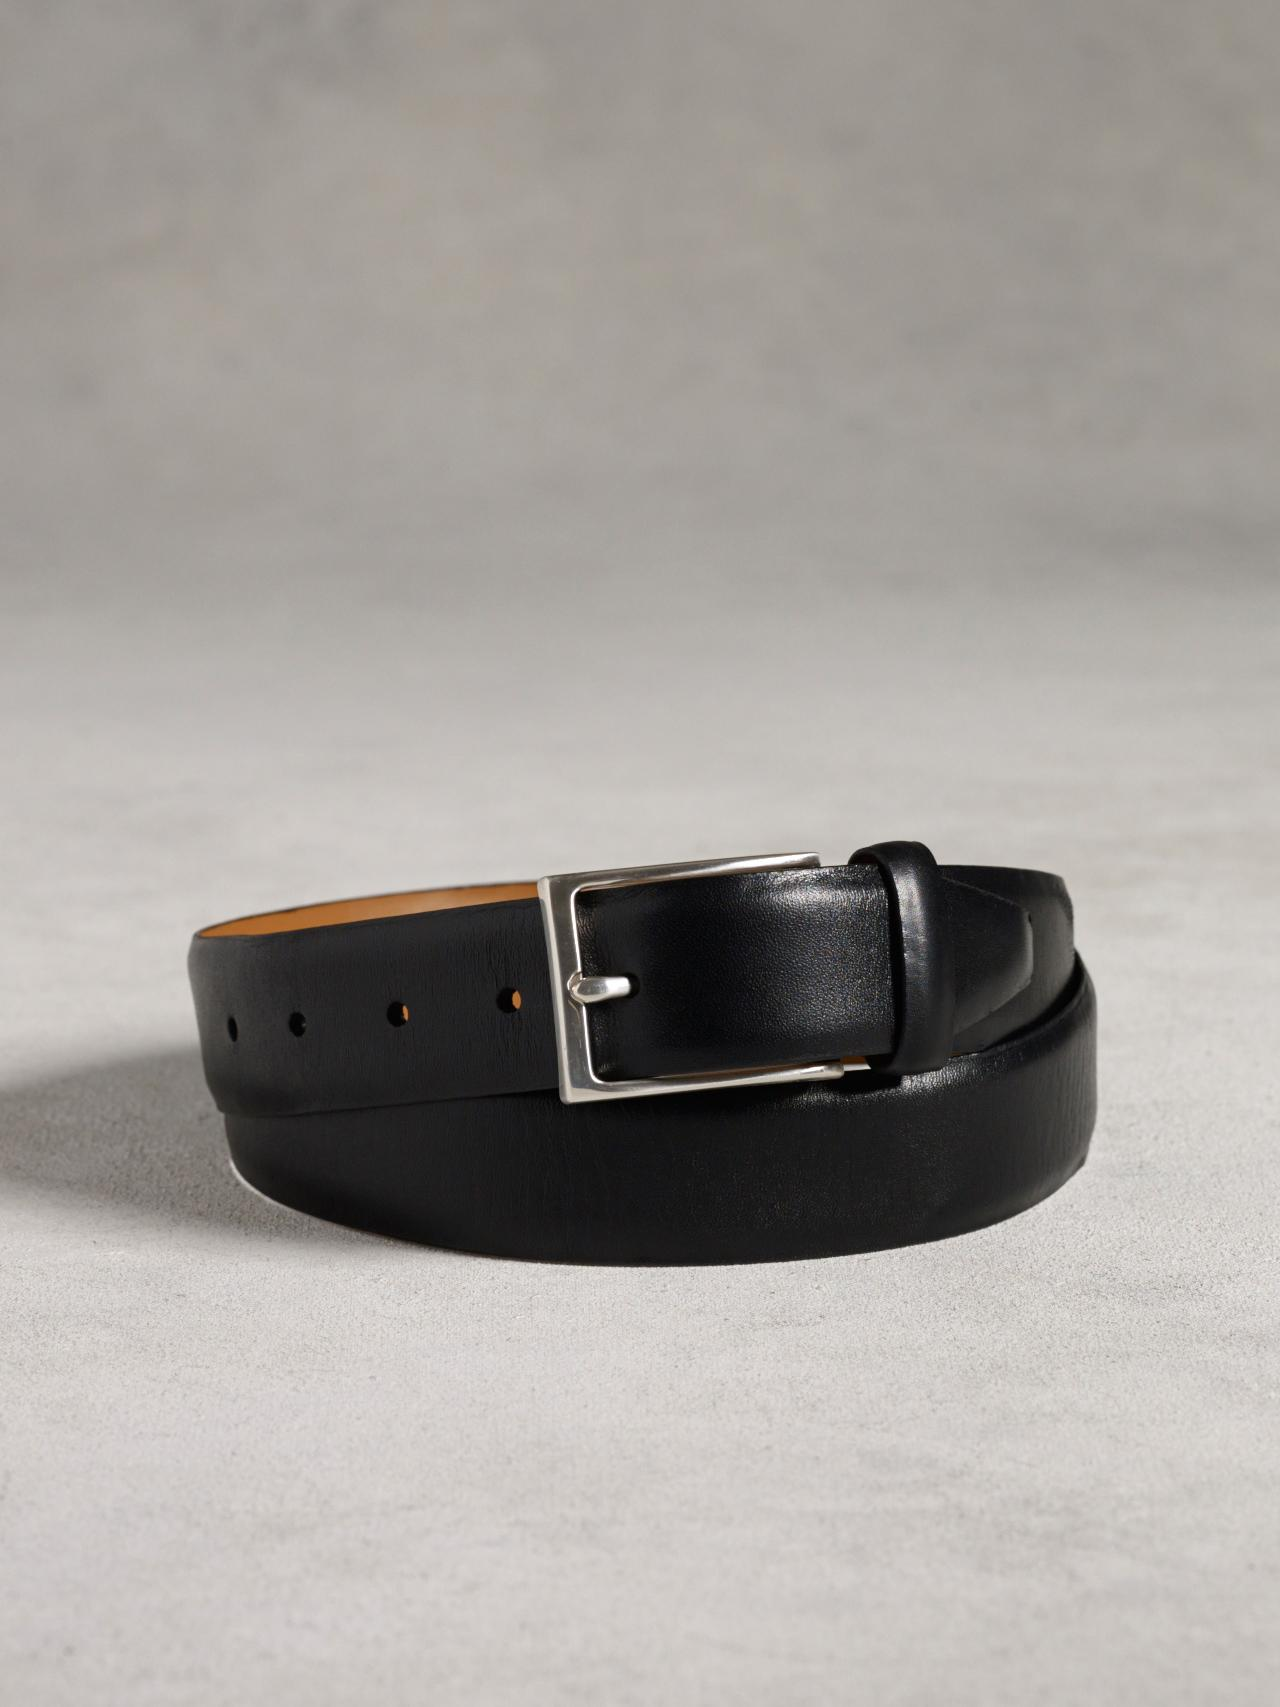 Feathered Edge Leather Belt